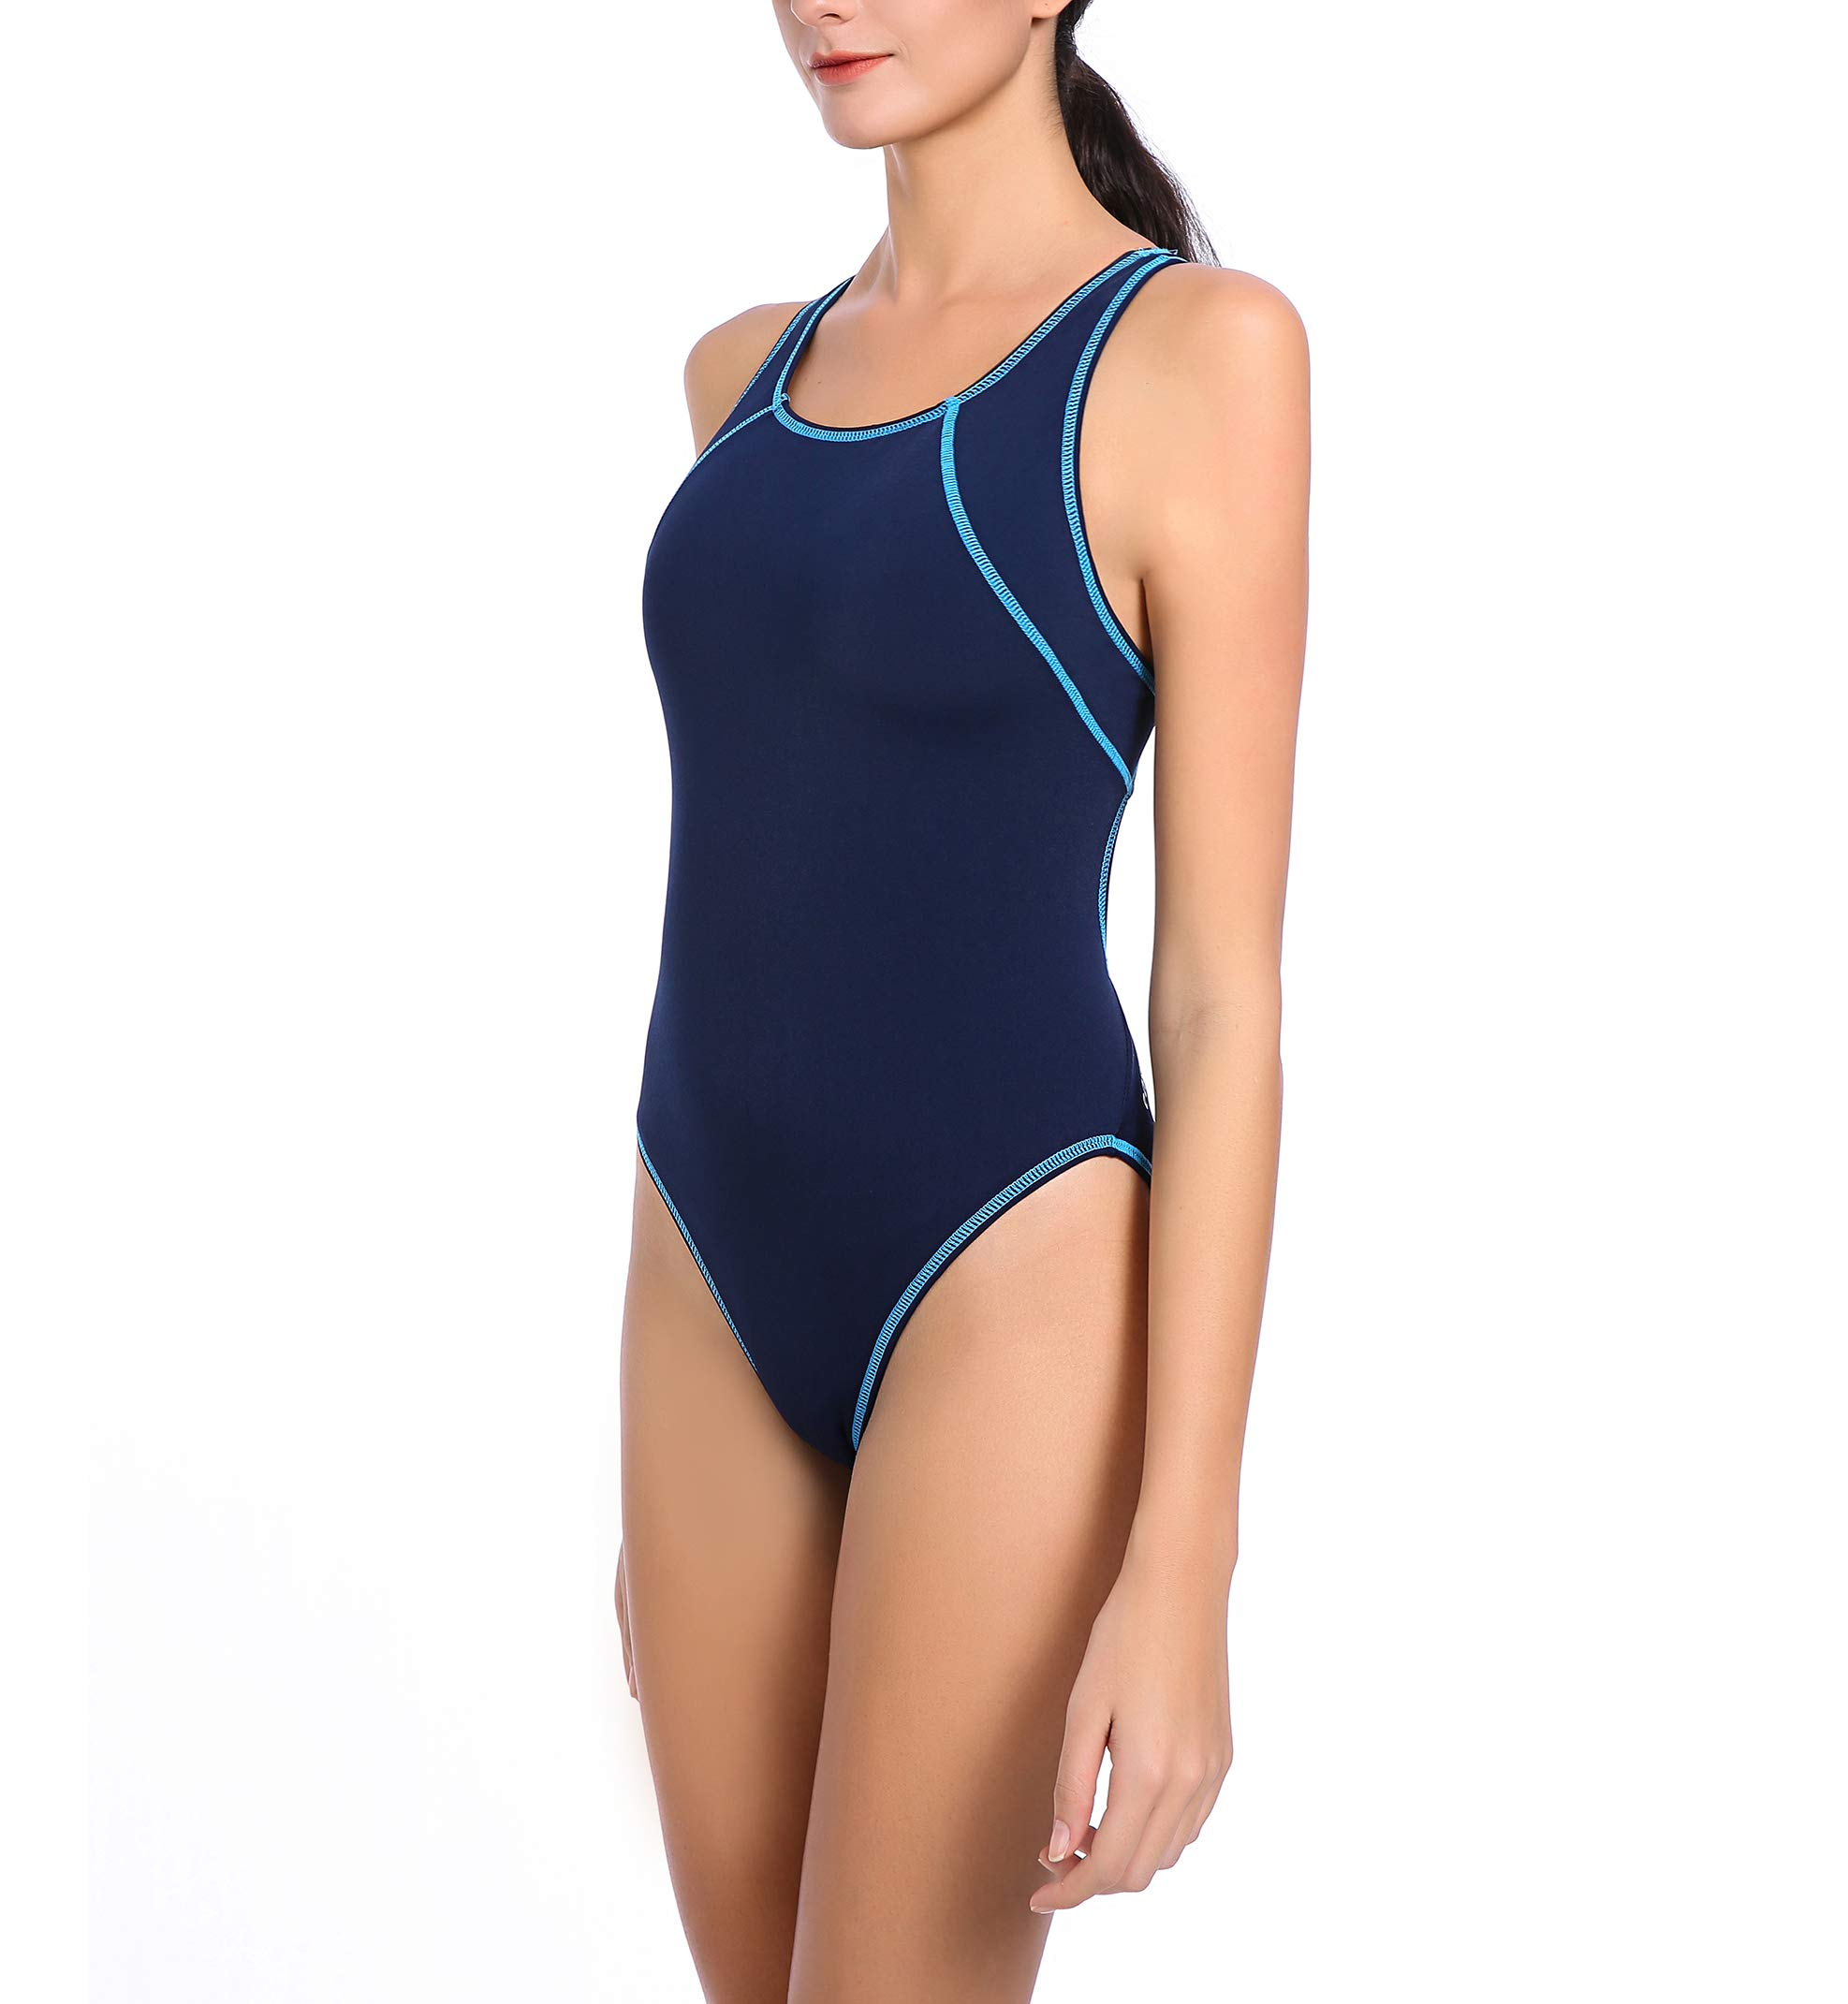 e54cf8cde58 Easyglide Athletic one-Piece Women Swimsuit Bathing Suit Comfortable  Polyester Fabric for Competition Exercise Training (36, Navy & Aqua)